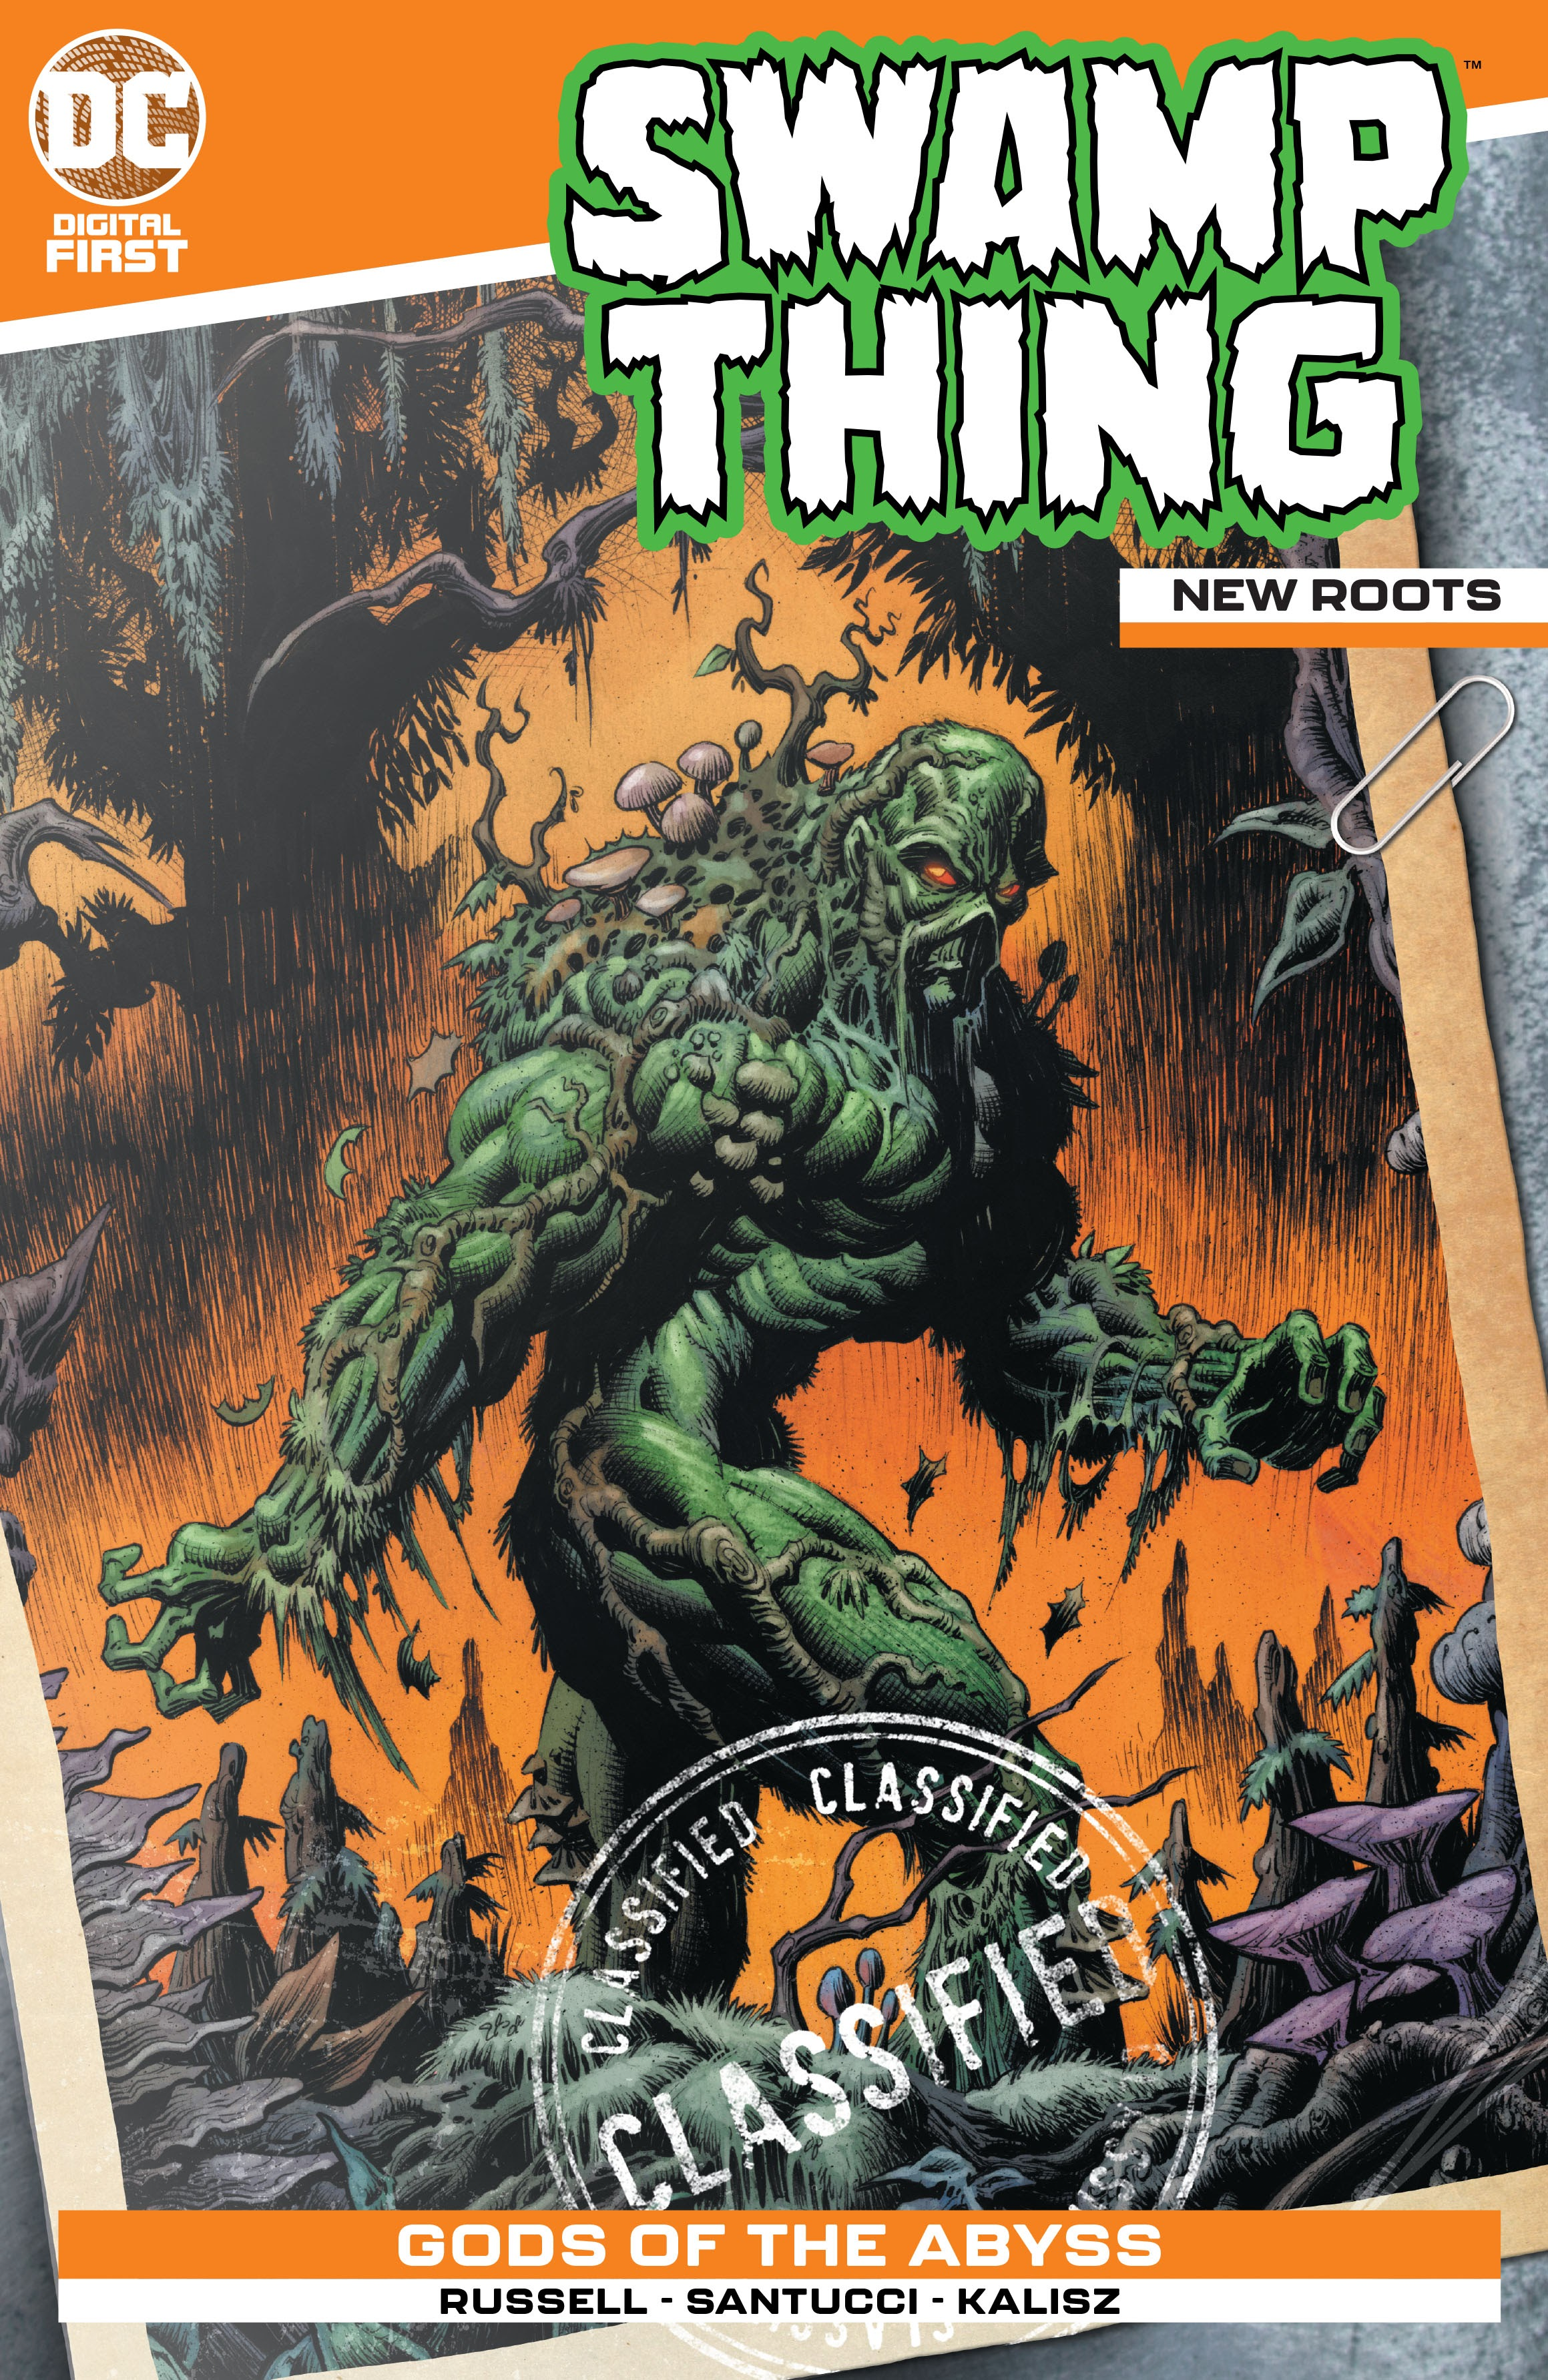 Swamp Thing: New Roots Vol 1 3 (Digital)